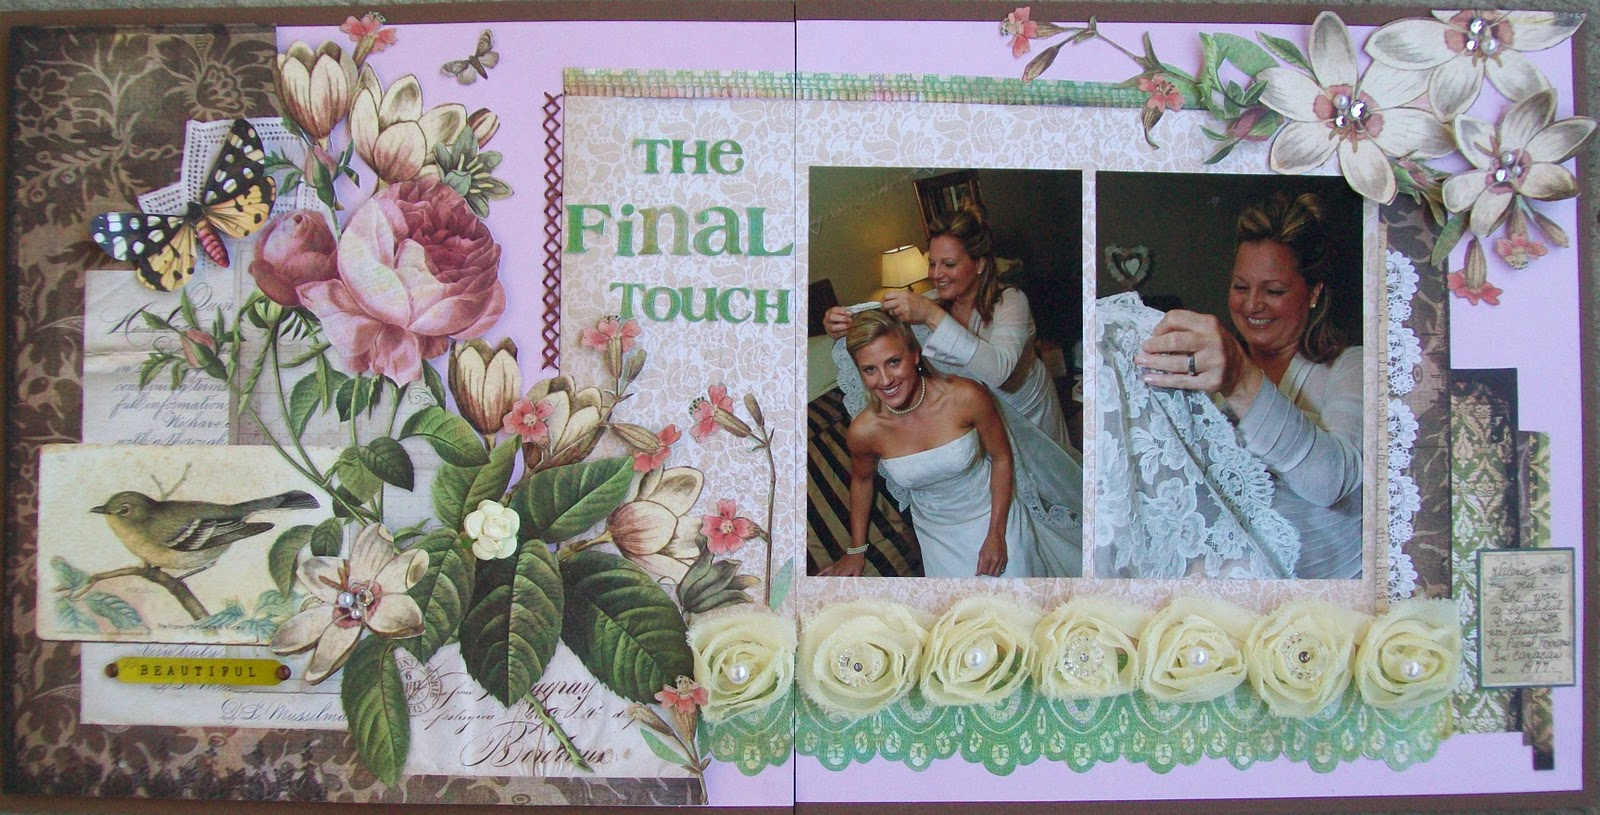 How to put scrapbook back together - I Also Used Other Papers From The Bg Curio Collection And Literally Took Apart Every Flower You See In This Layout And Put Them Back Together